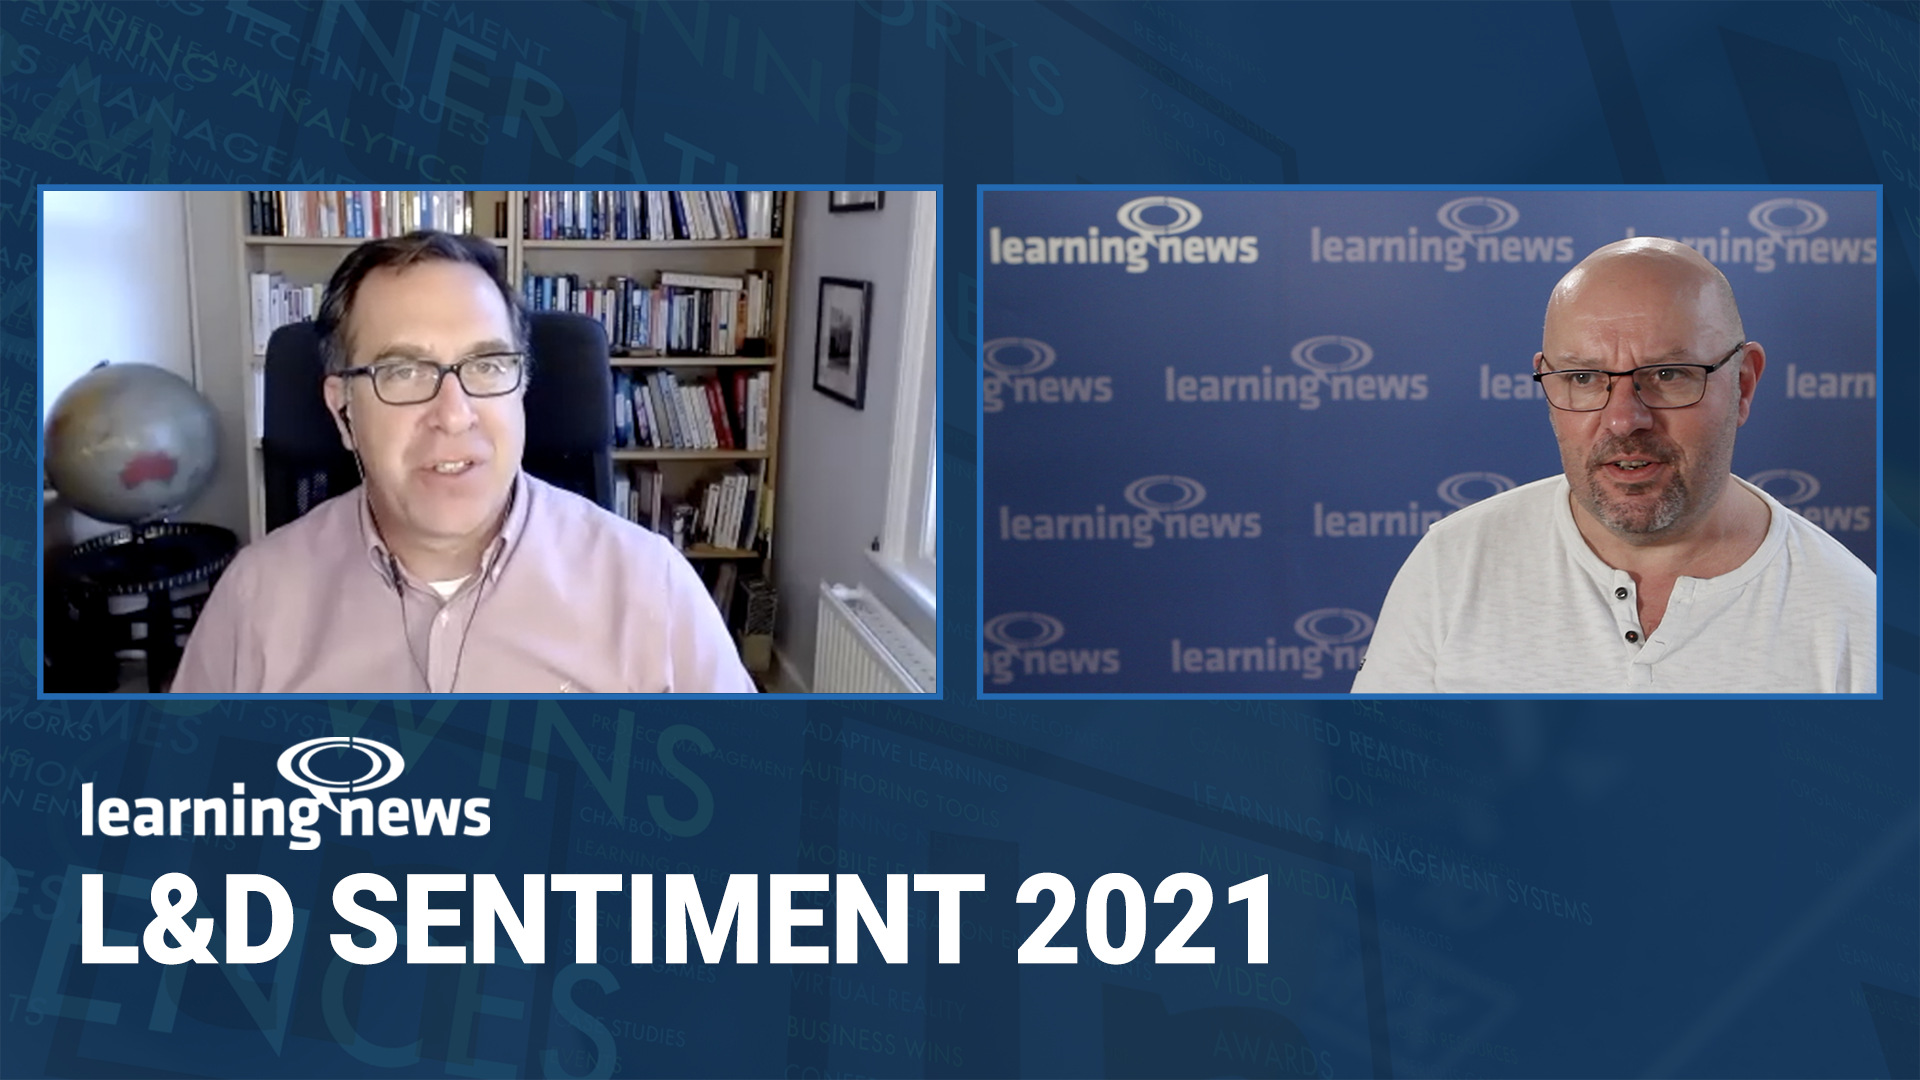 Donald H Taylor joins Learning News to explore L&D's shifting priorities